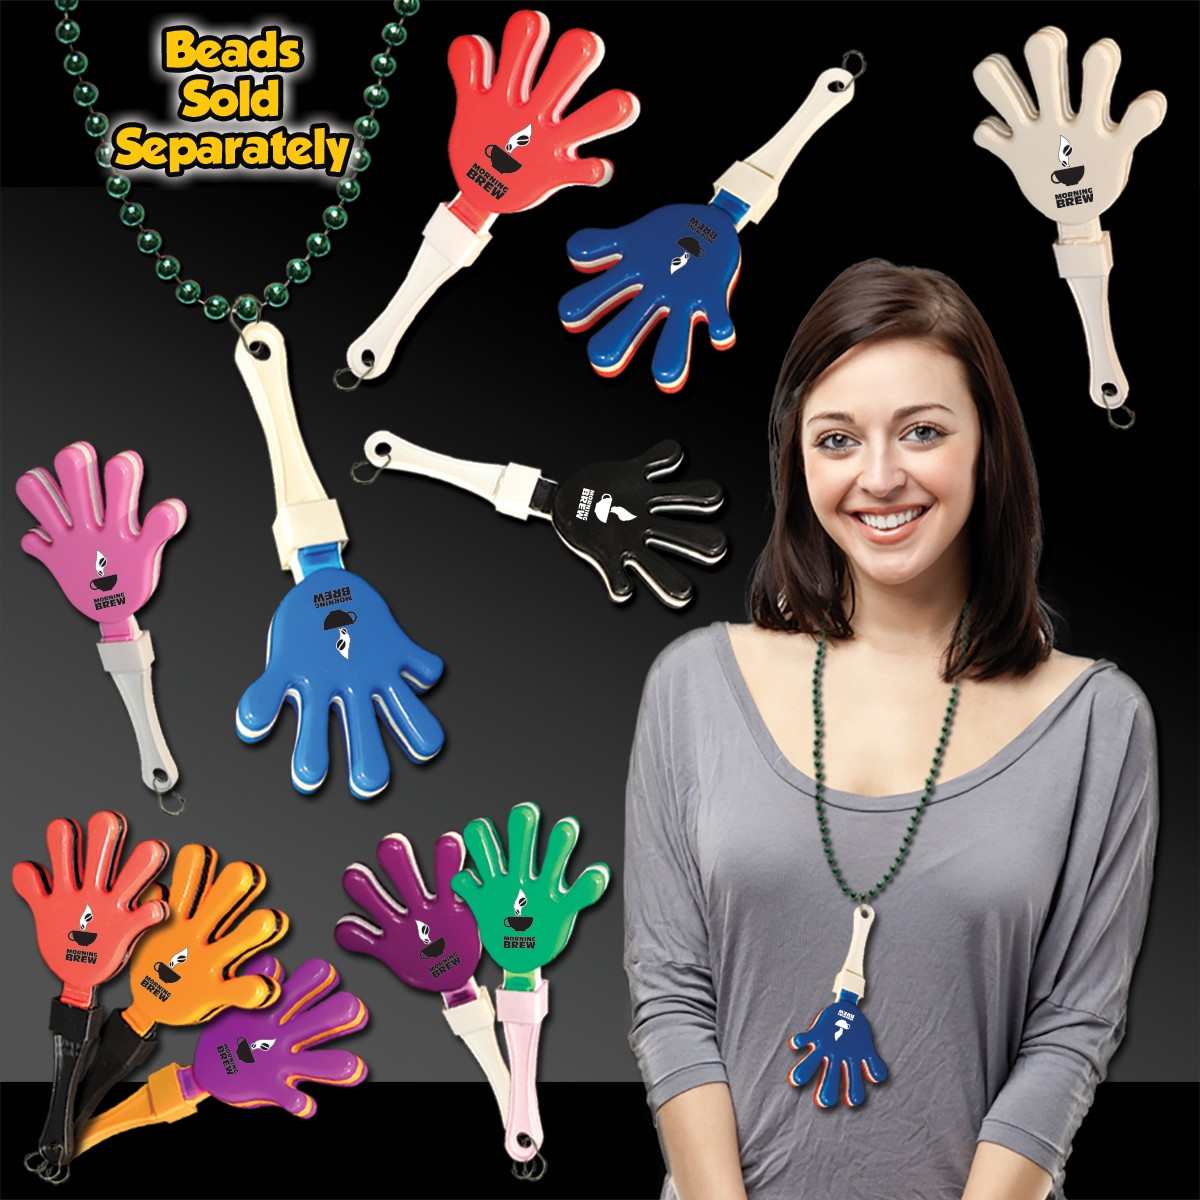 7 Inch Hand Clappers with J - Hook